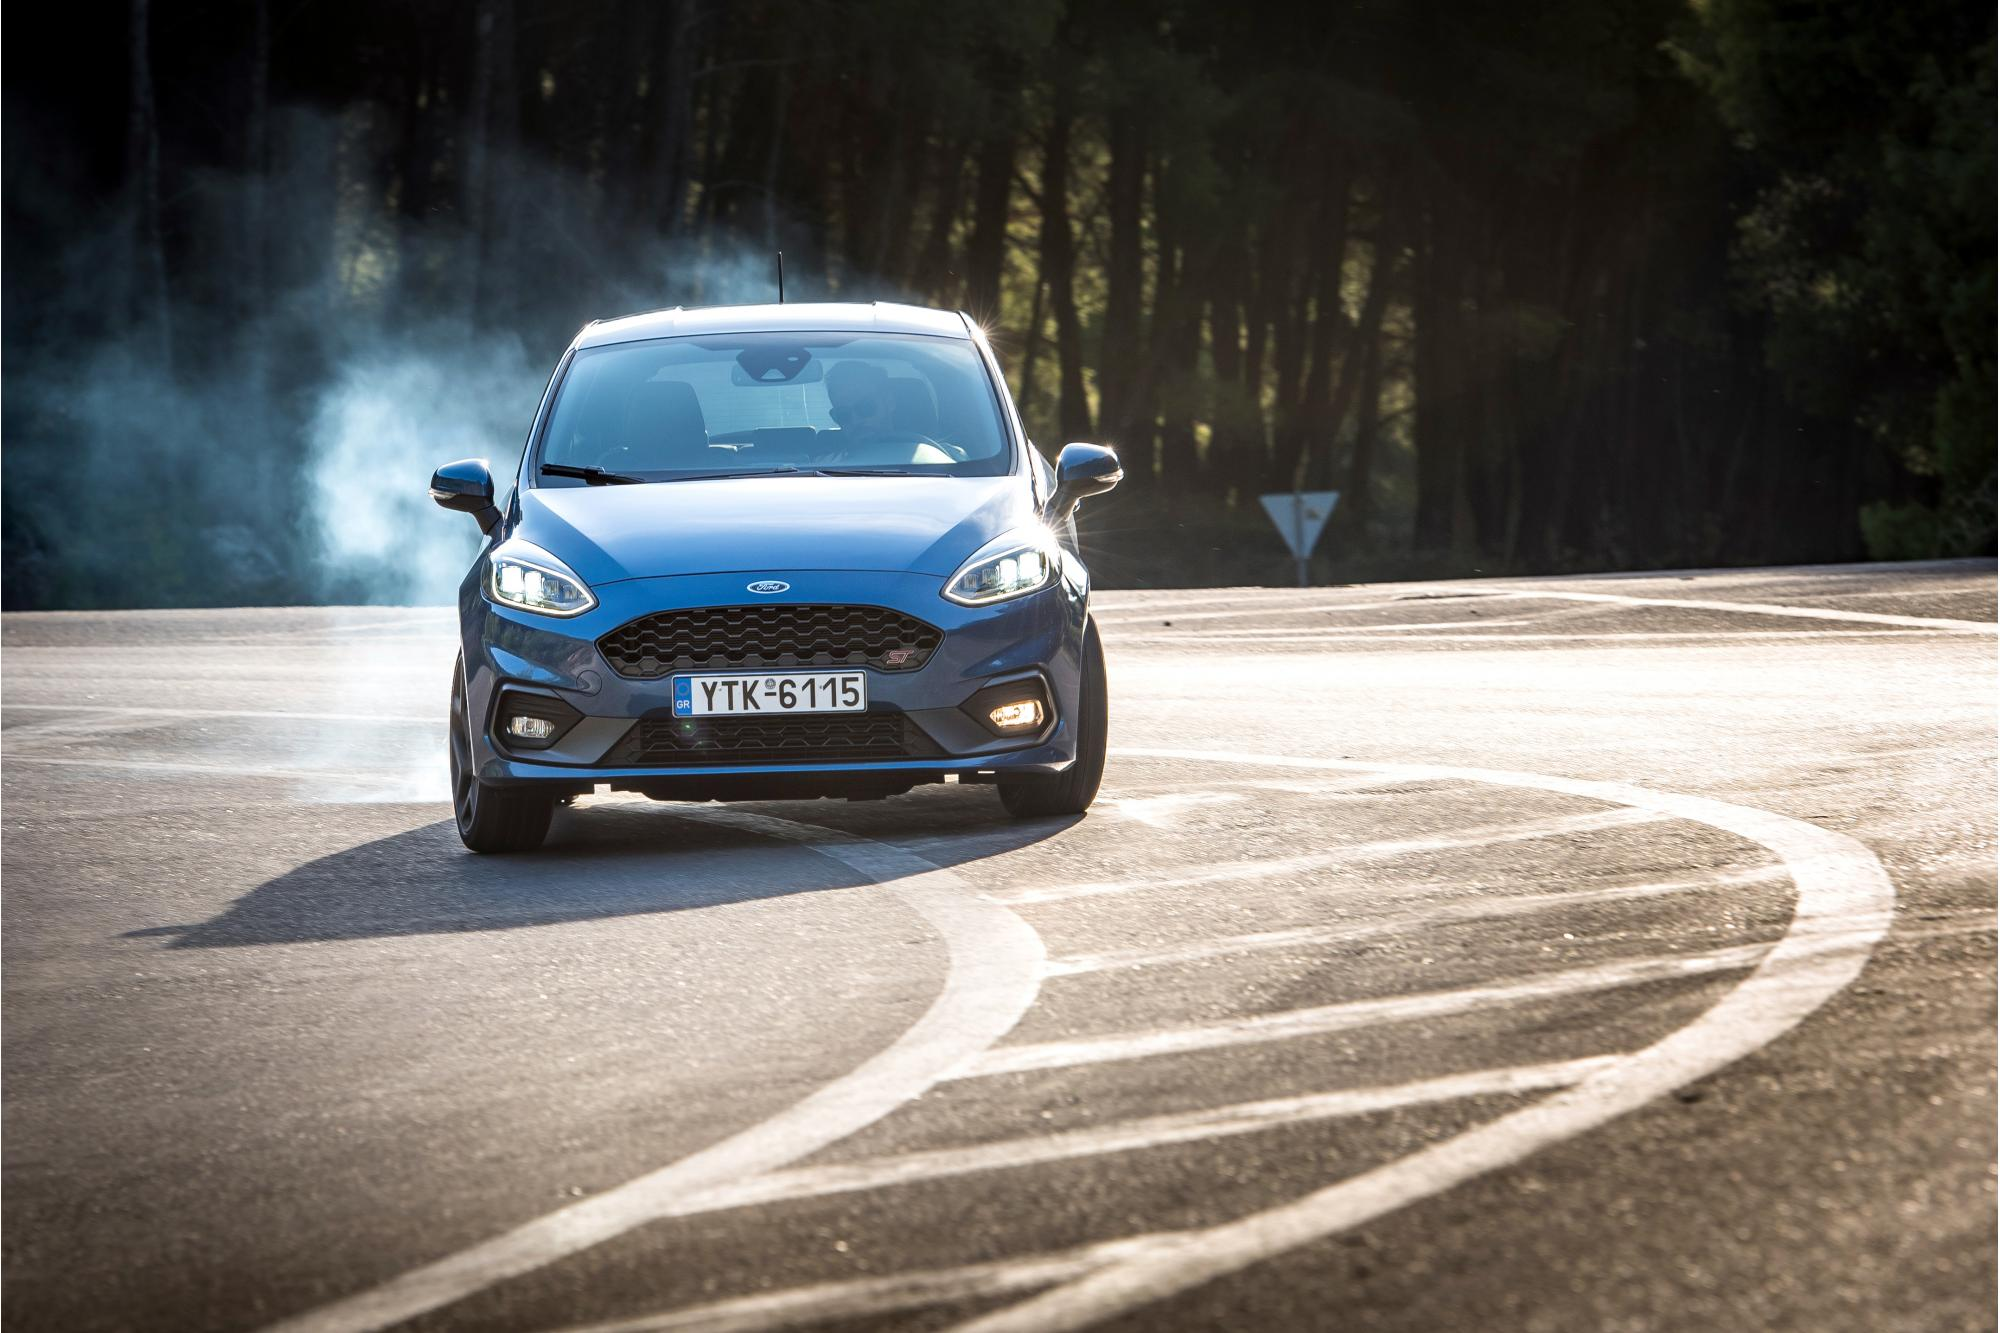 Ford Fiesta ST 1.5EcoBoost 200Ps